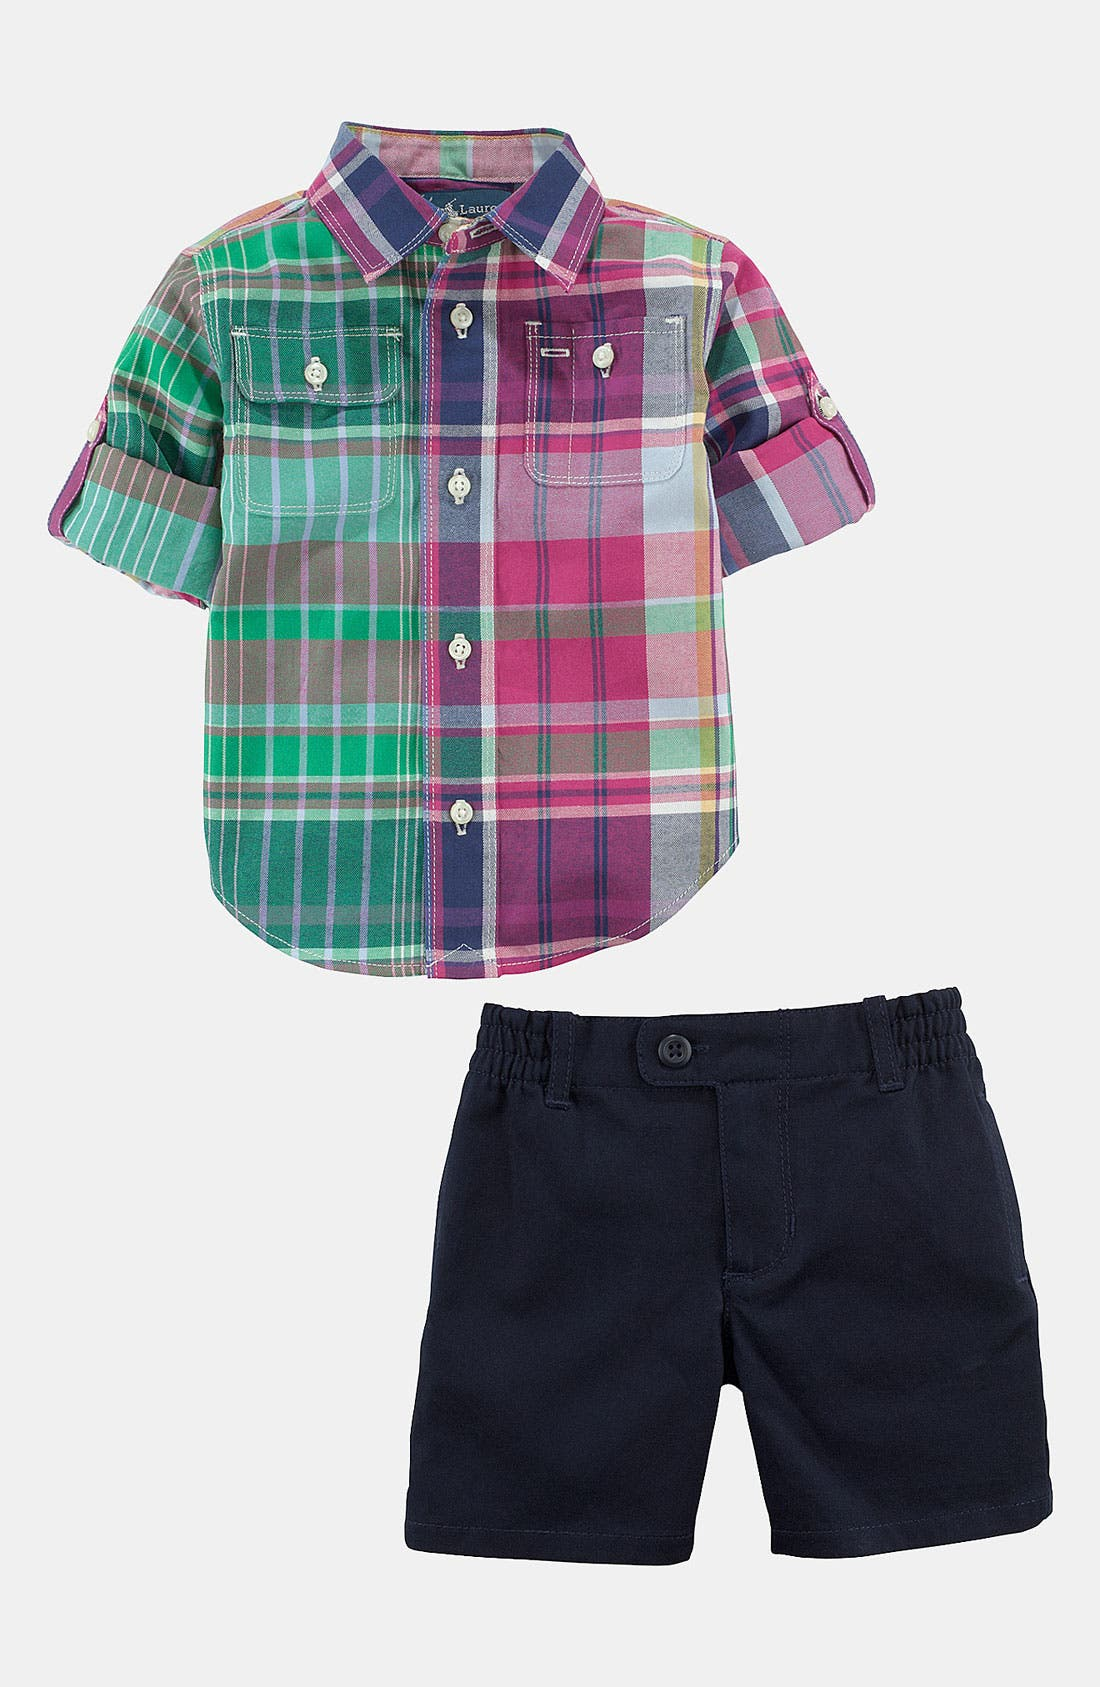 Main Image - Ralph Lauren Plaid Shirt & Shorts (Baby)